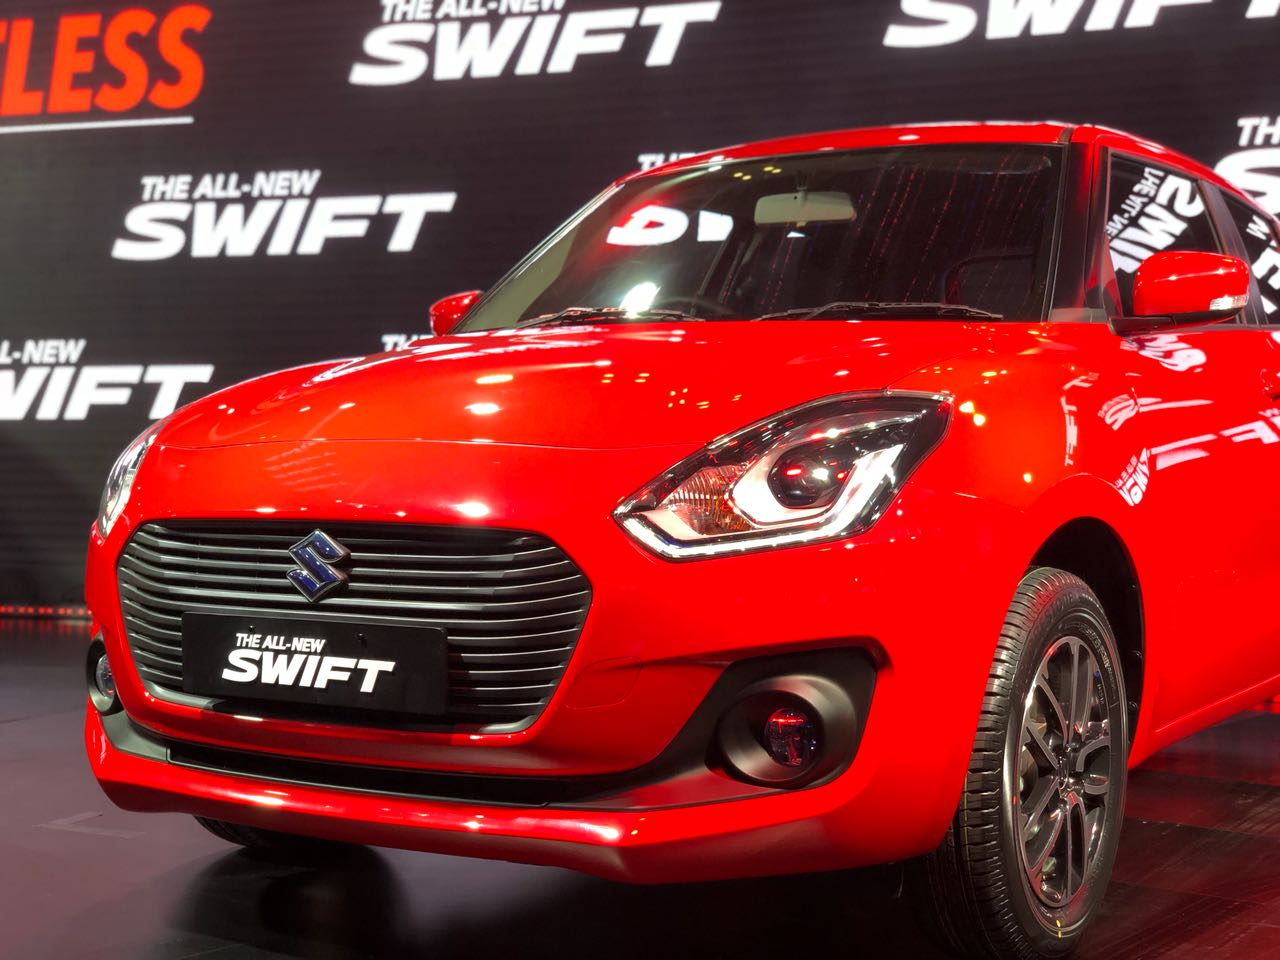 All New Maruti Suzuki Swift Launched Starting Price Rs 4 99 Lakh